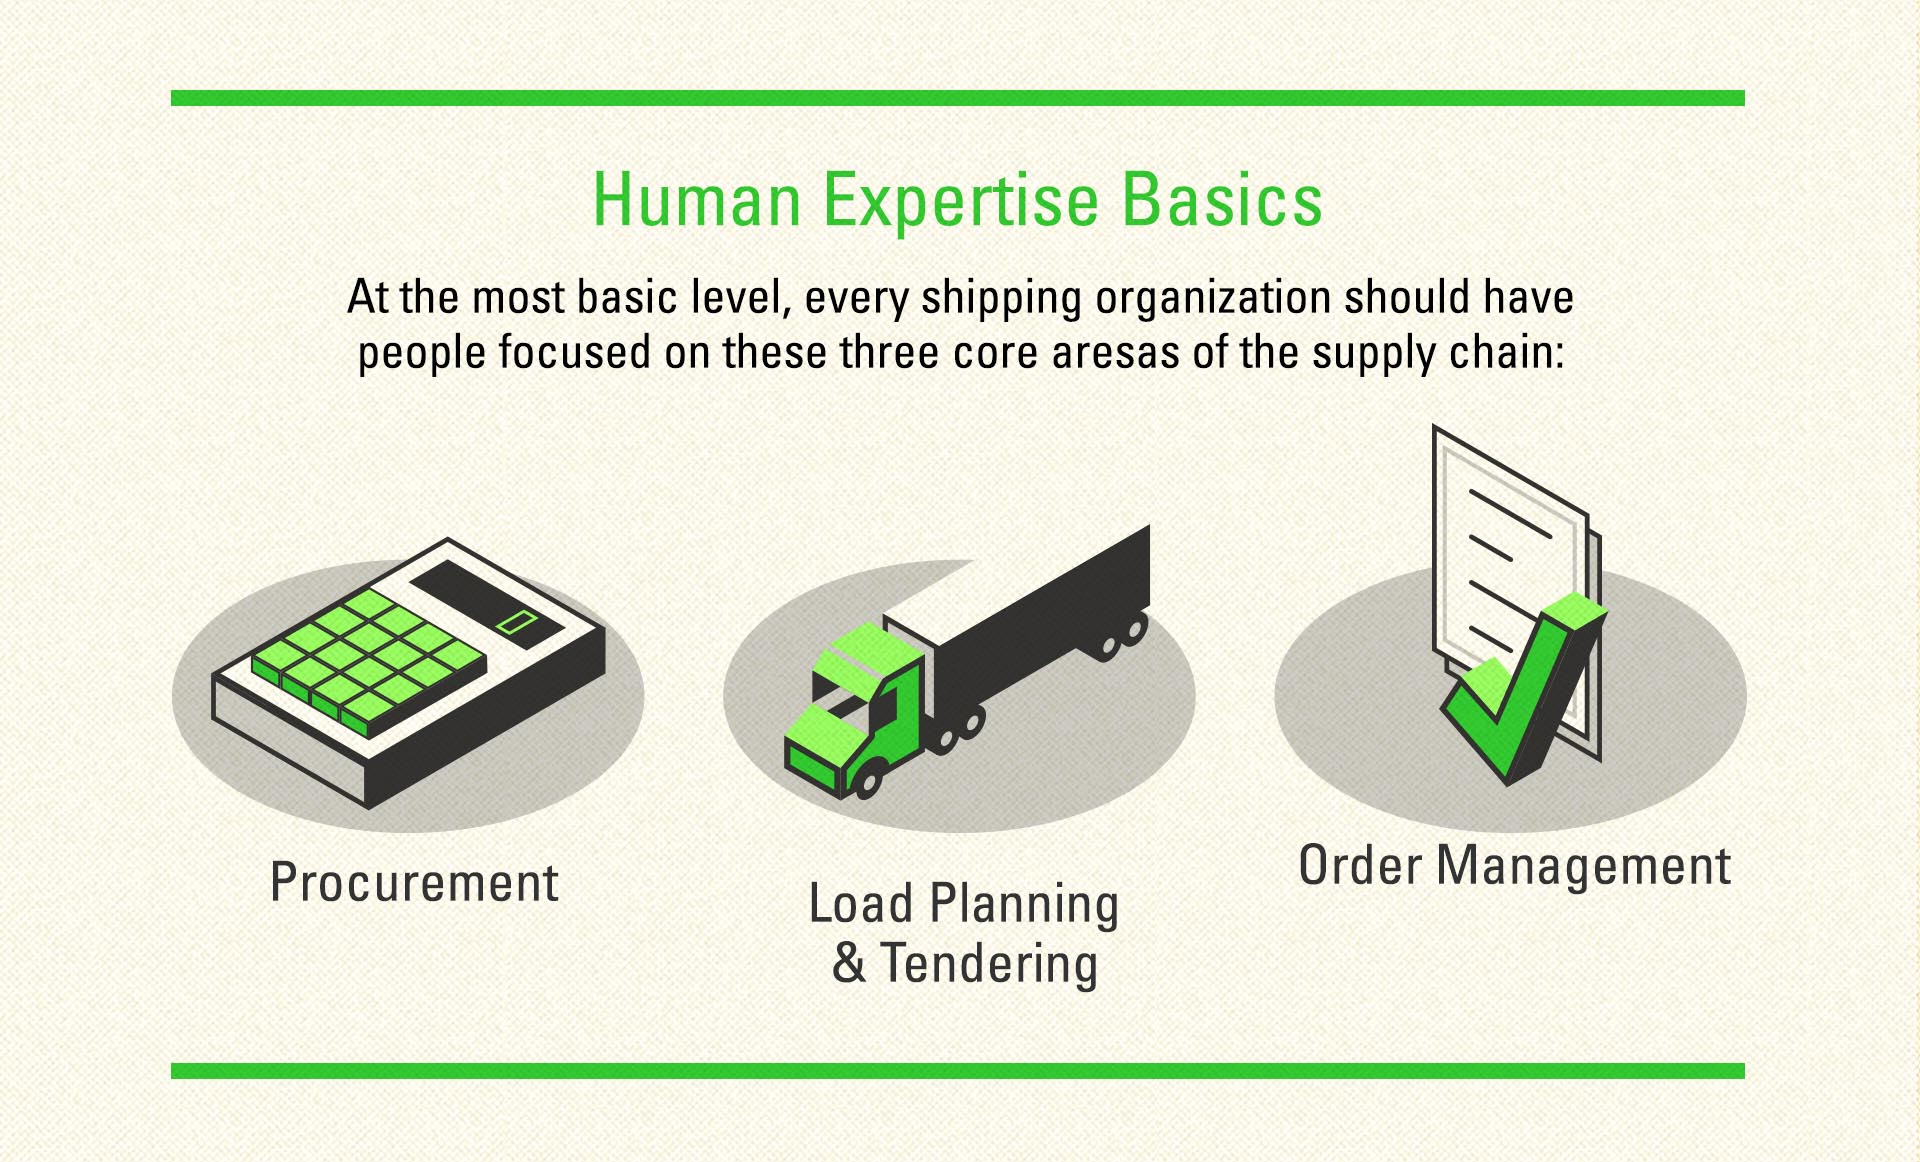 Human Expertise Basics graphic